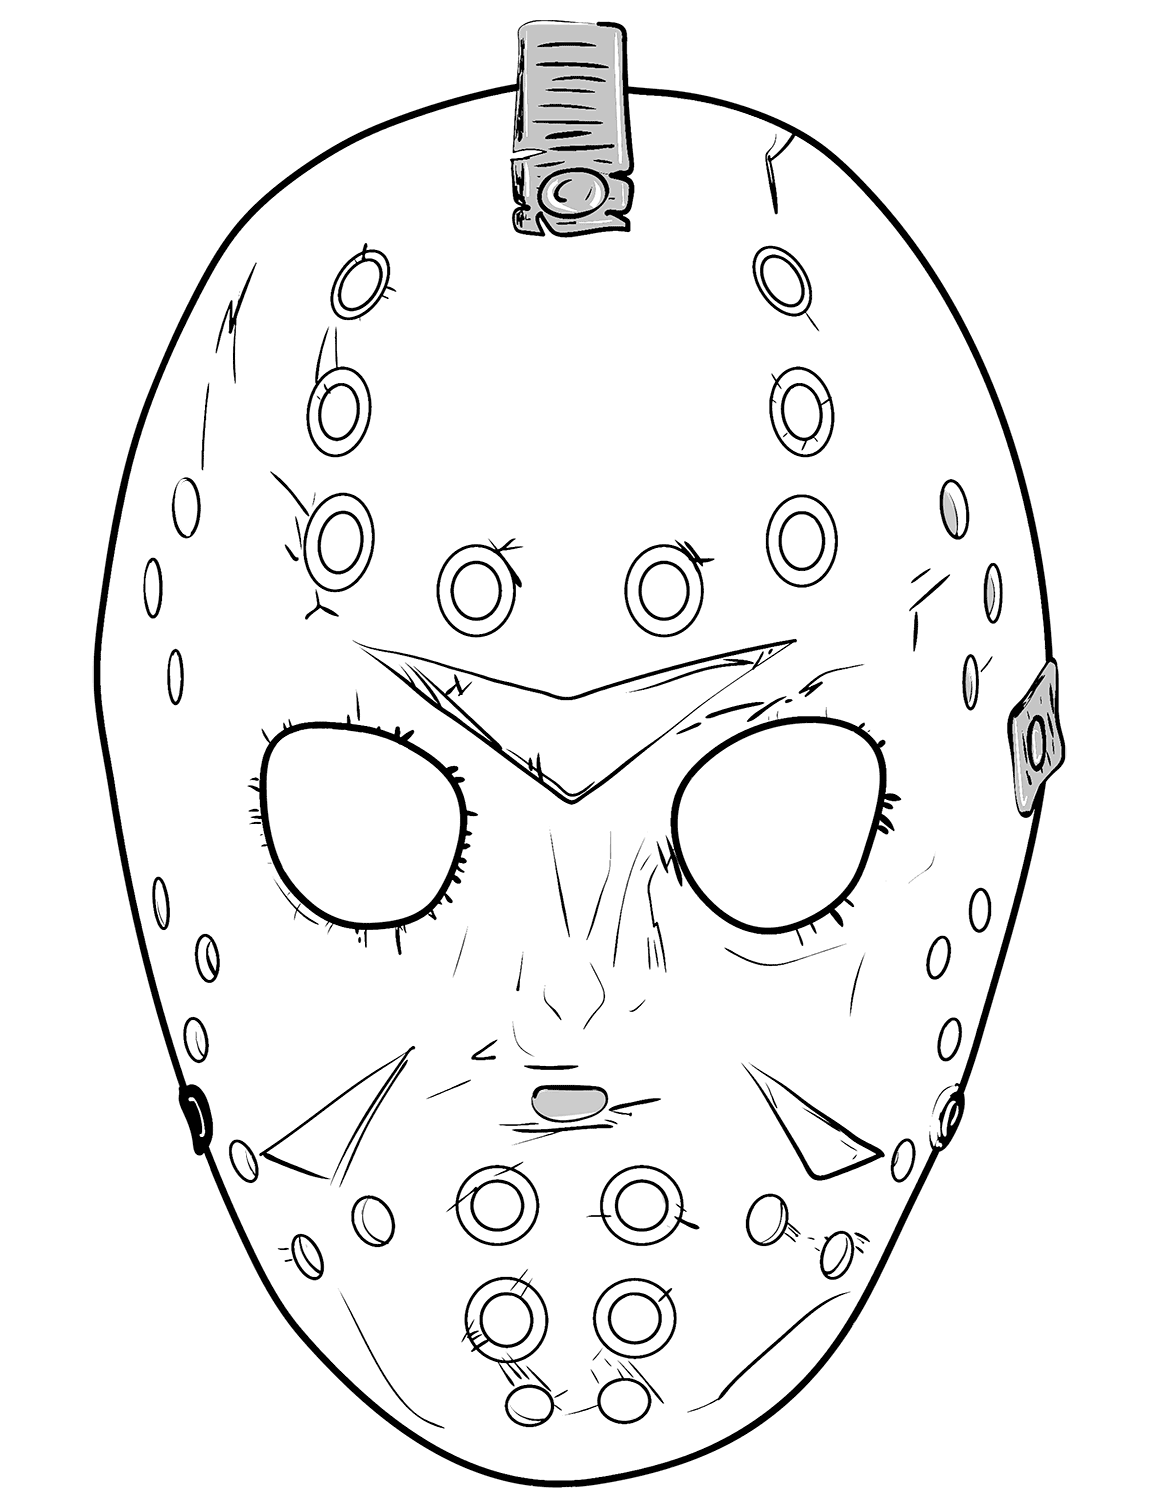 Jason Coloring Pages Friday the 13th Jason mask, Jason